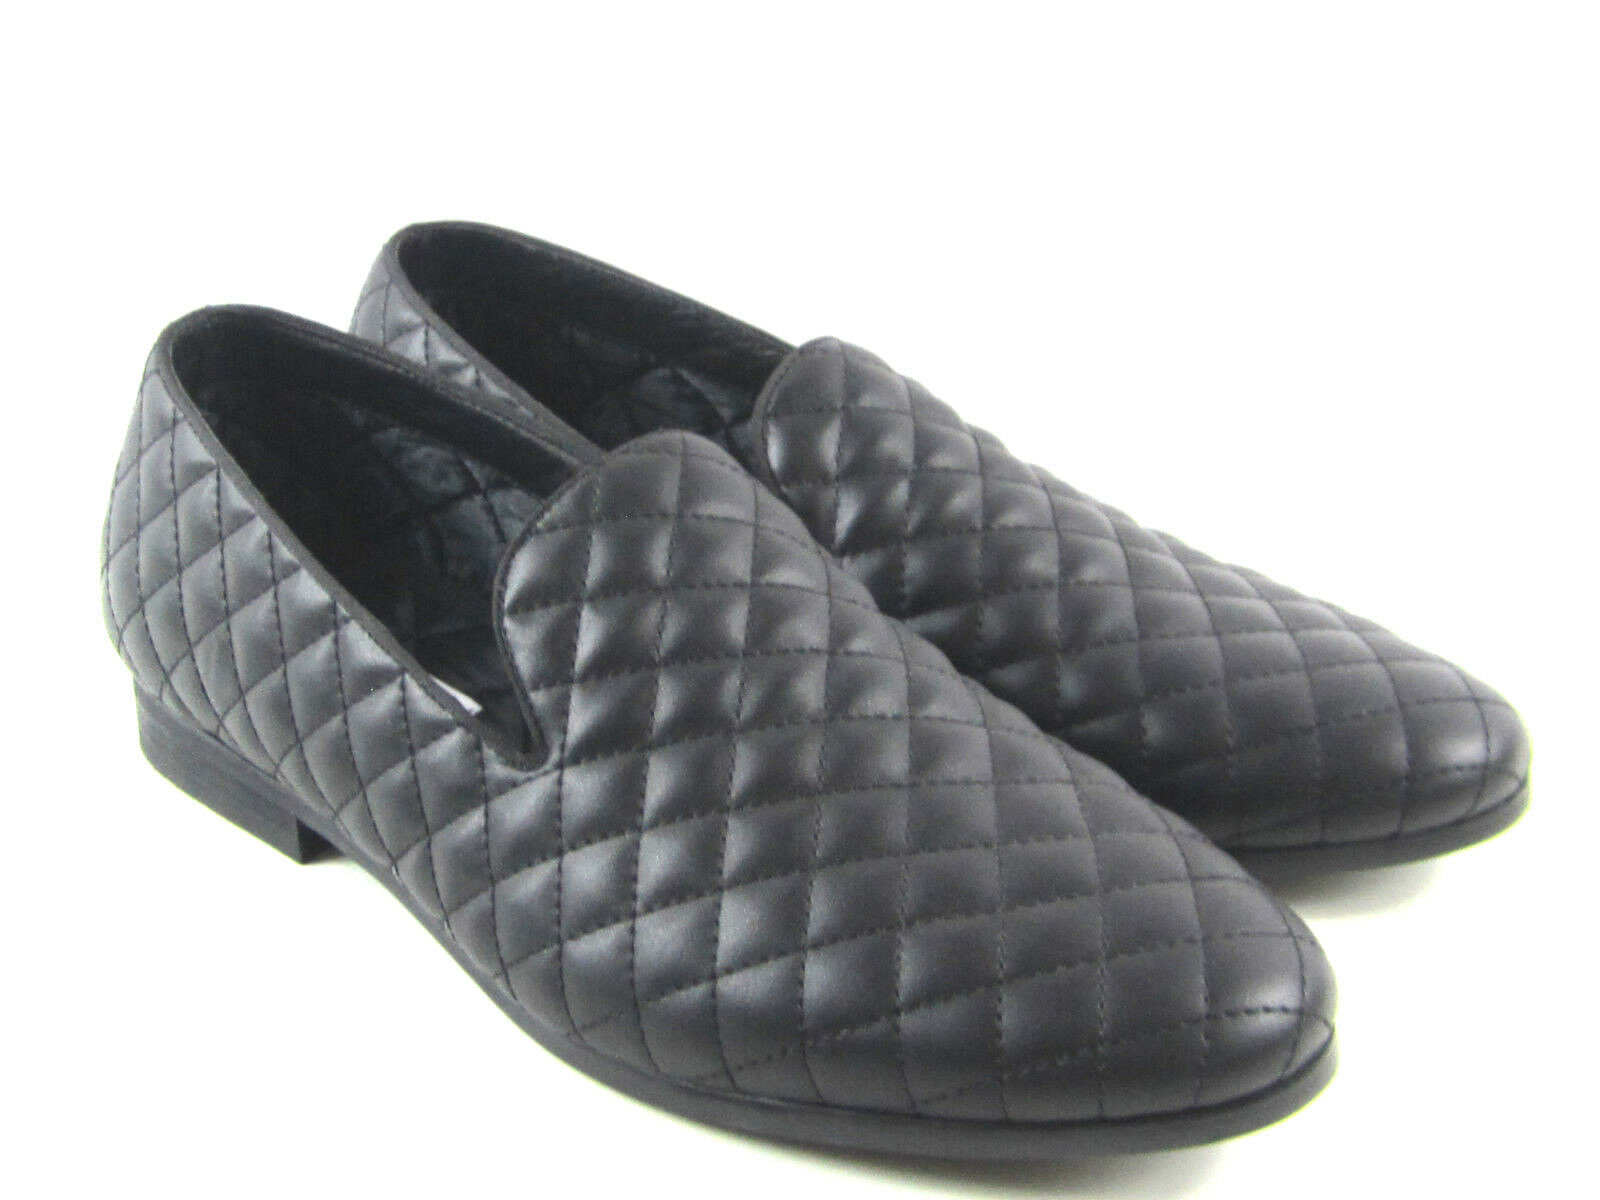 Steve Madden Men's Cubic Smoking Loafer Slip On shoes Quilted Pleated Size 10.5